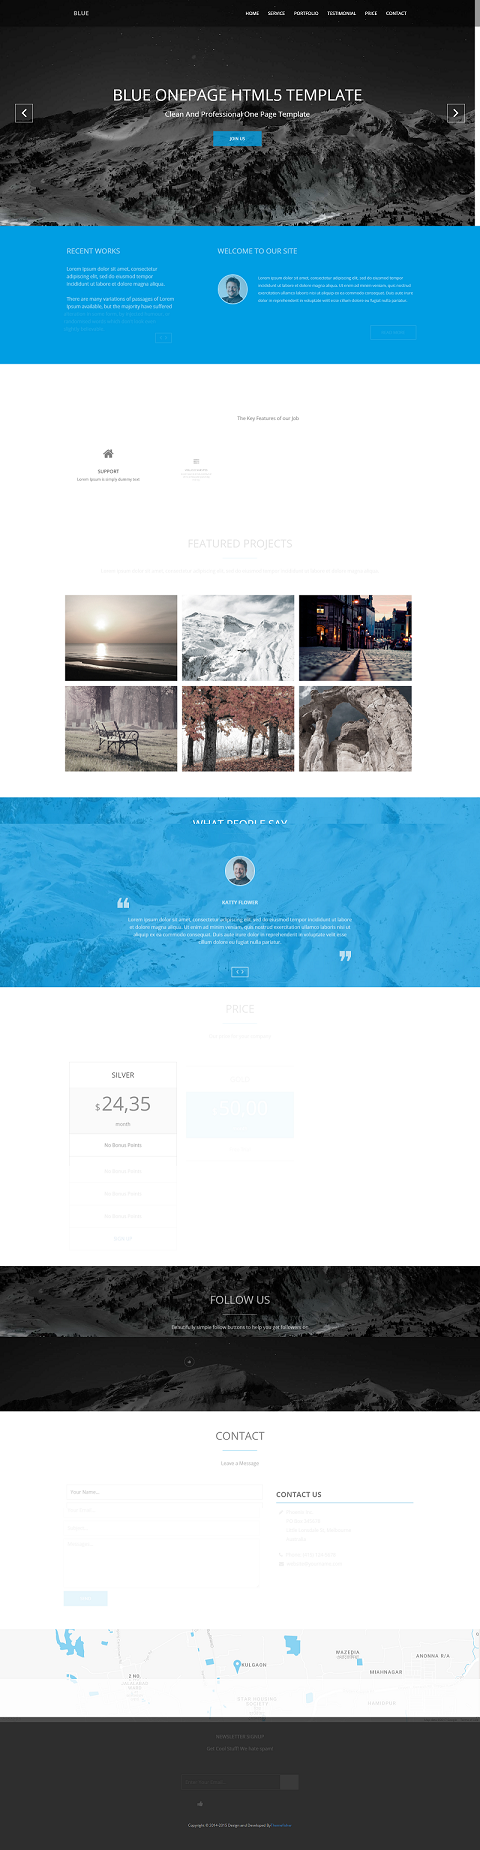 Blue One page website template html5 responsive free download